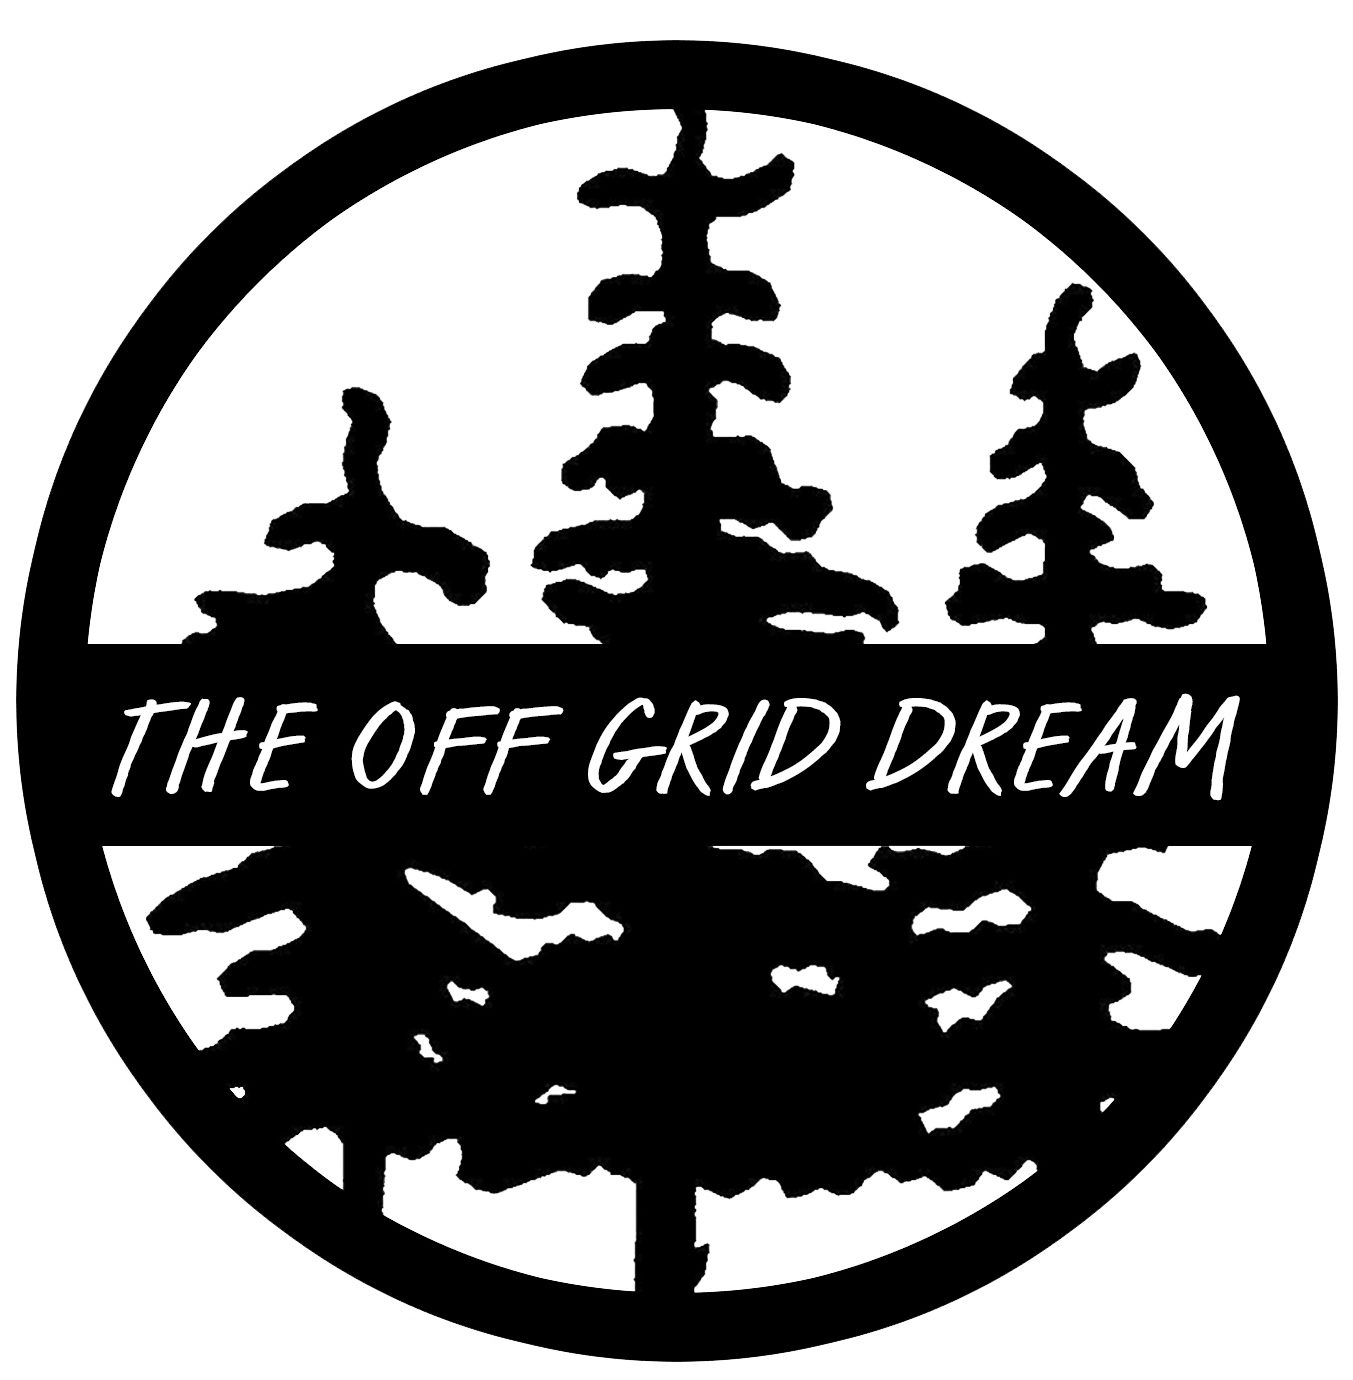 The Off Grid Dream